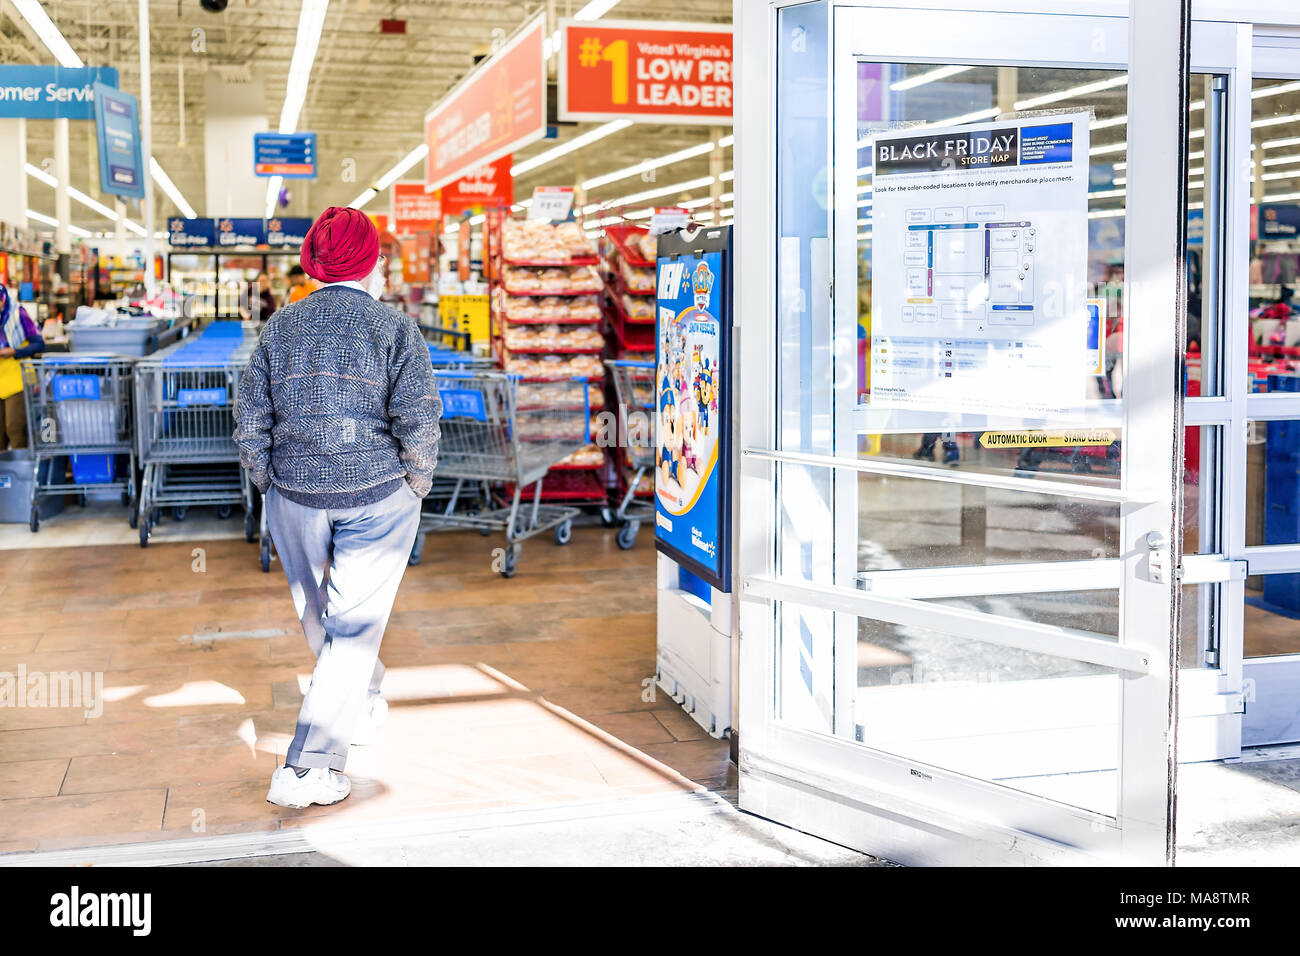 Burke, USA - November 24, 2017: Black Friday sign in Walmart store entrance with map after Thanksgiving shopping consumerism in Virginia with sikh man - Stock Image